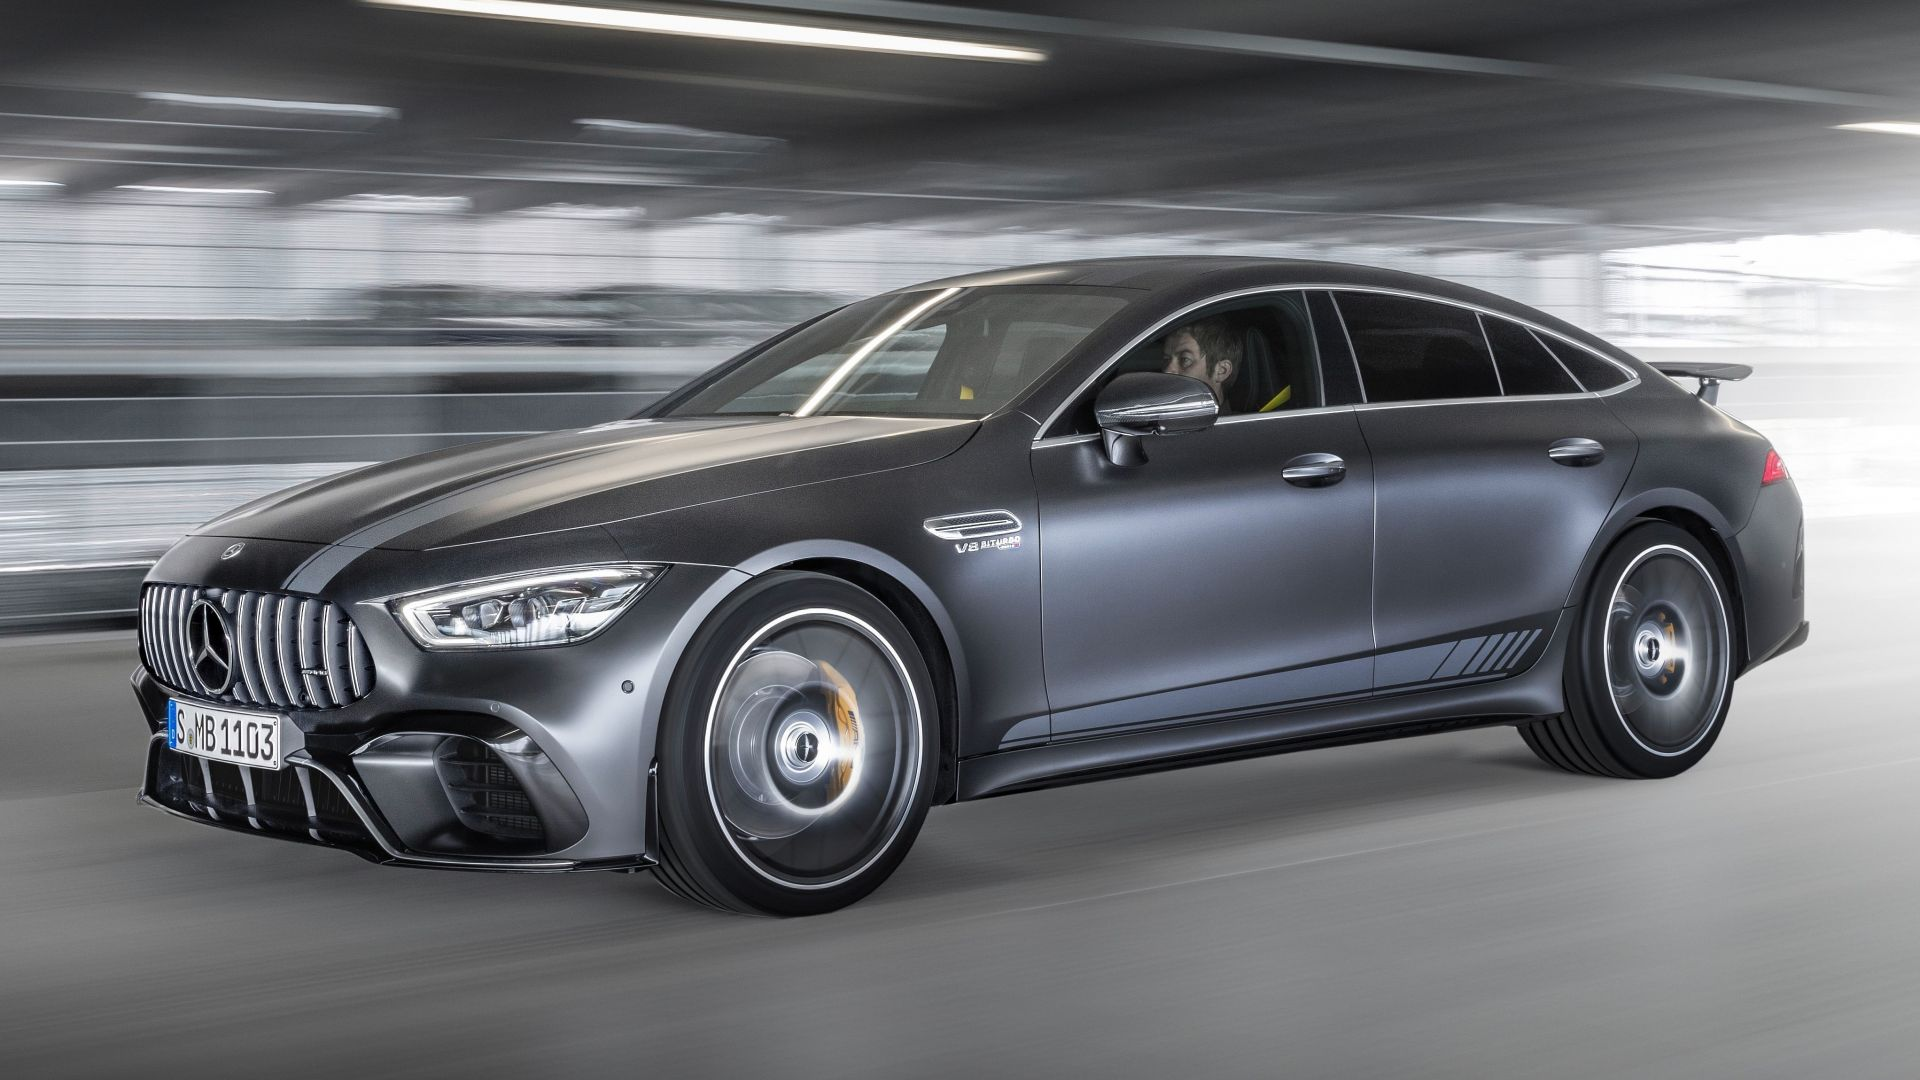 Mercedes-Benz AMG GT63 S 4-Door Edition, 2019 Cars, 4K (horizontal)